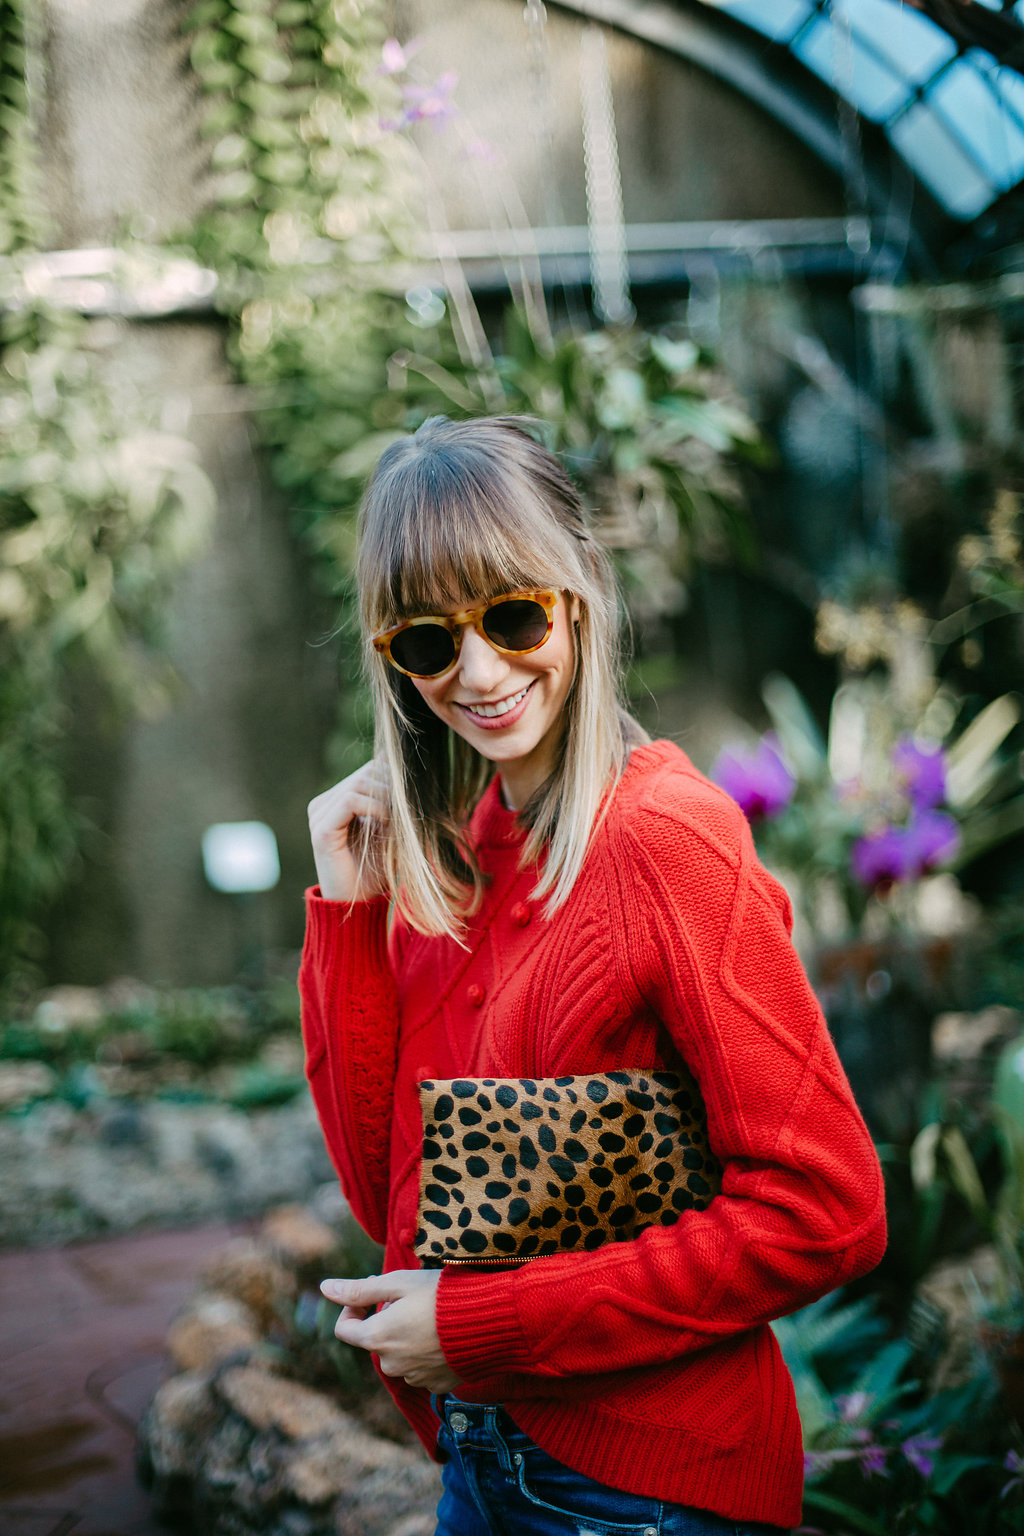 red sweater and leopard clutch